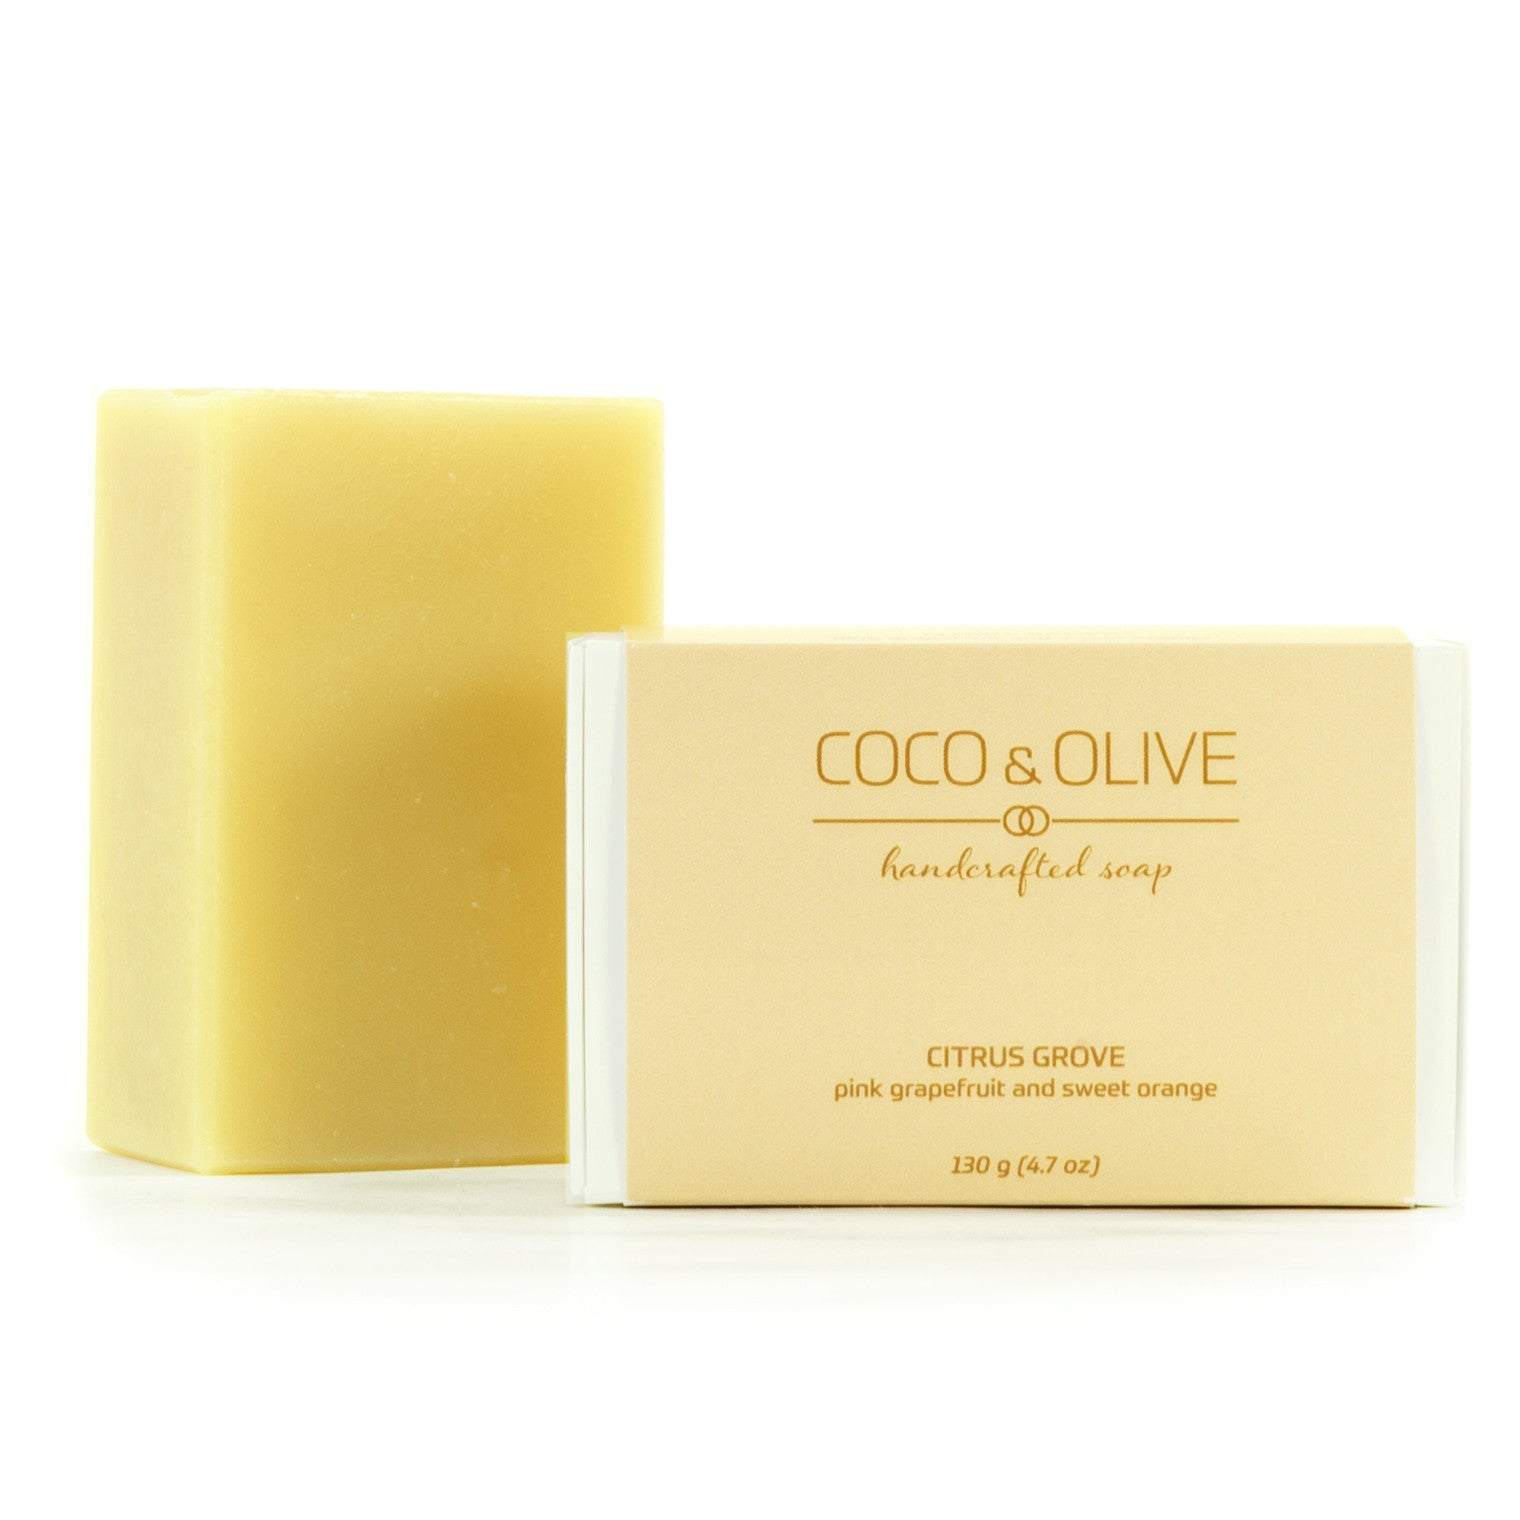 Coco & Olive Citrus Grove luxury handmade soap. Bring the luxury of the spa home.